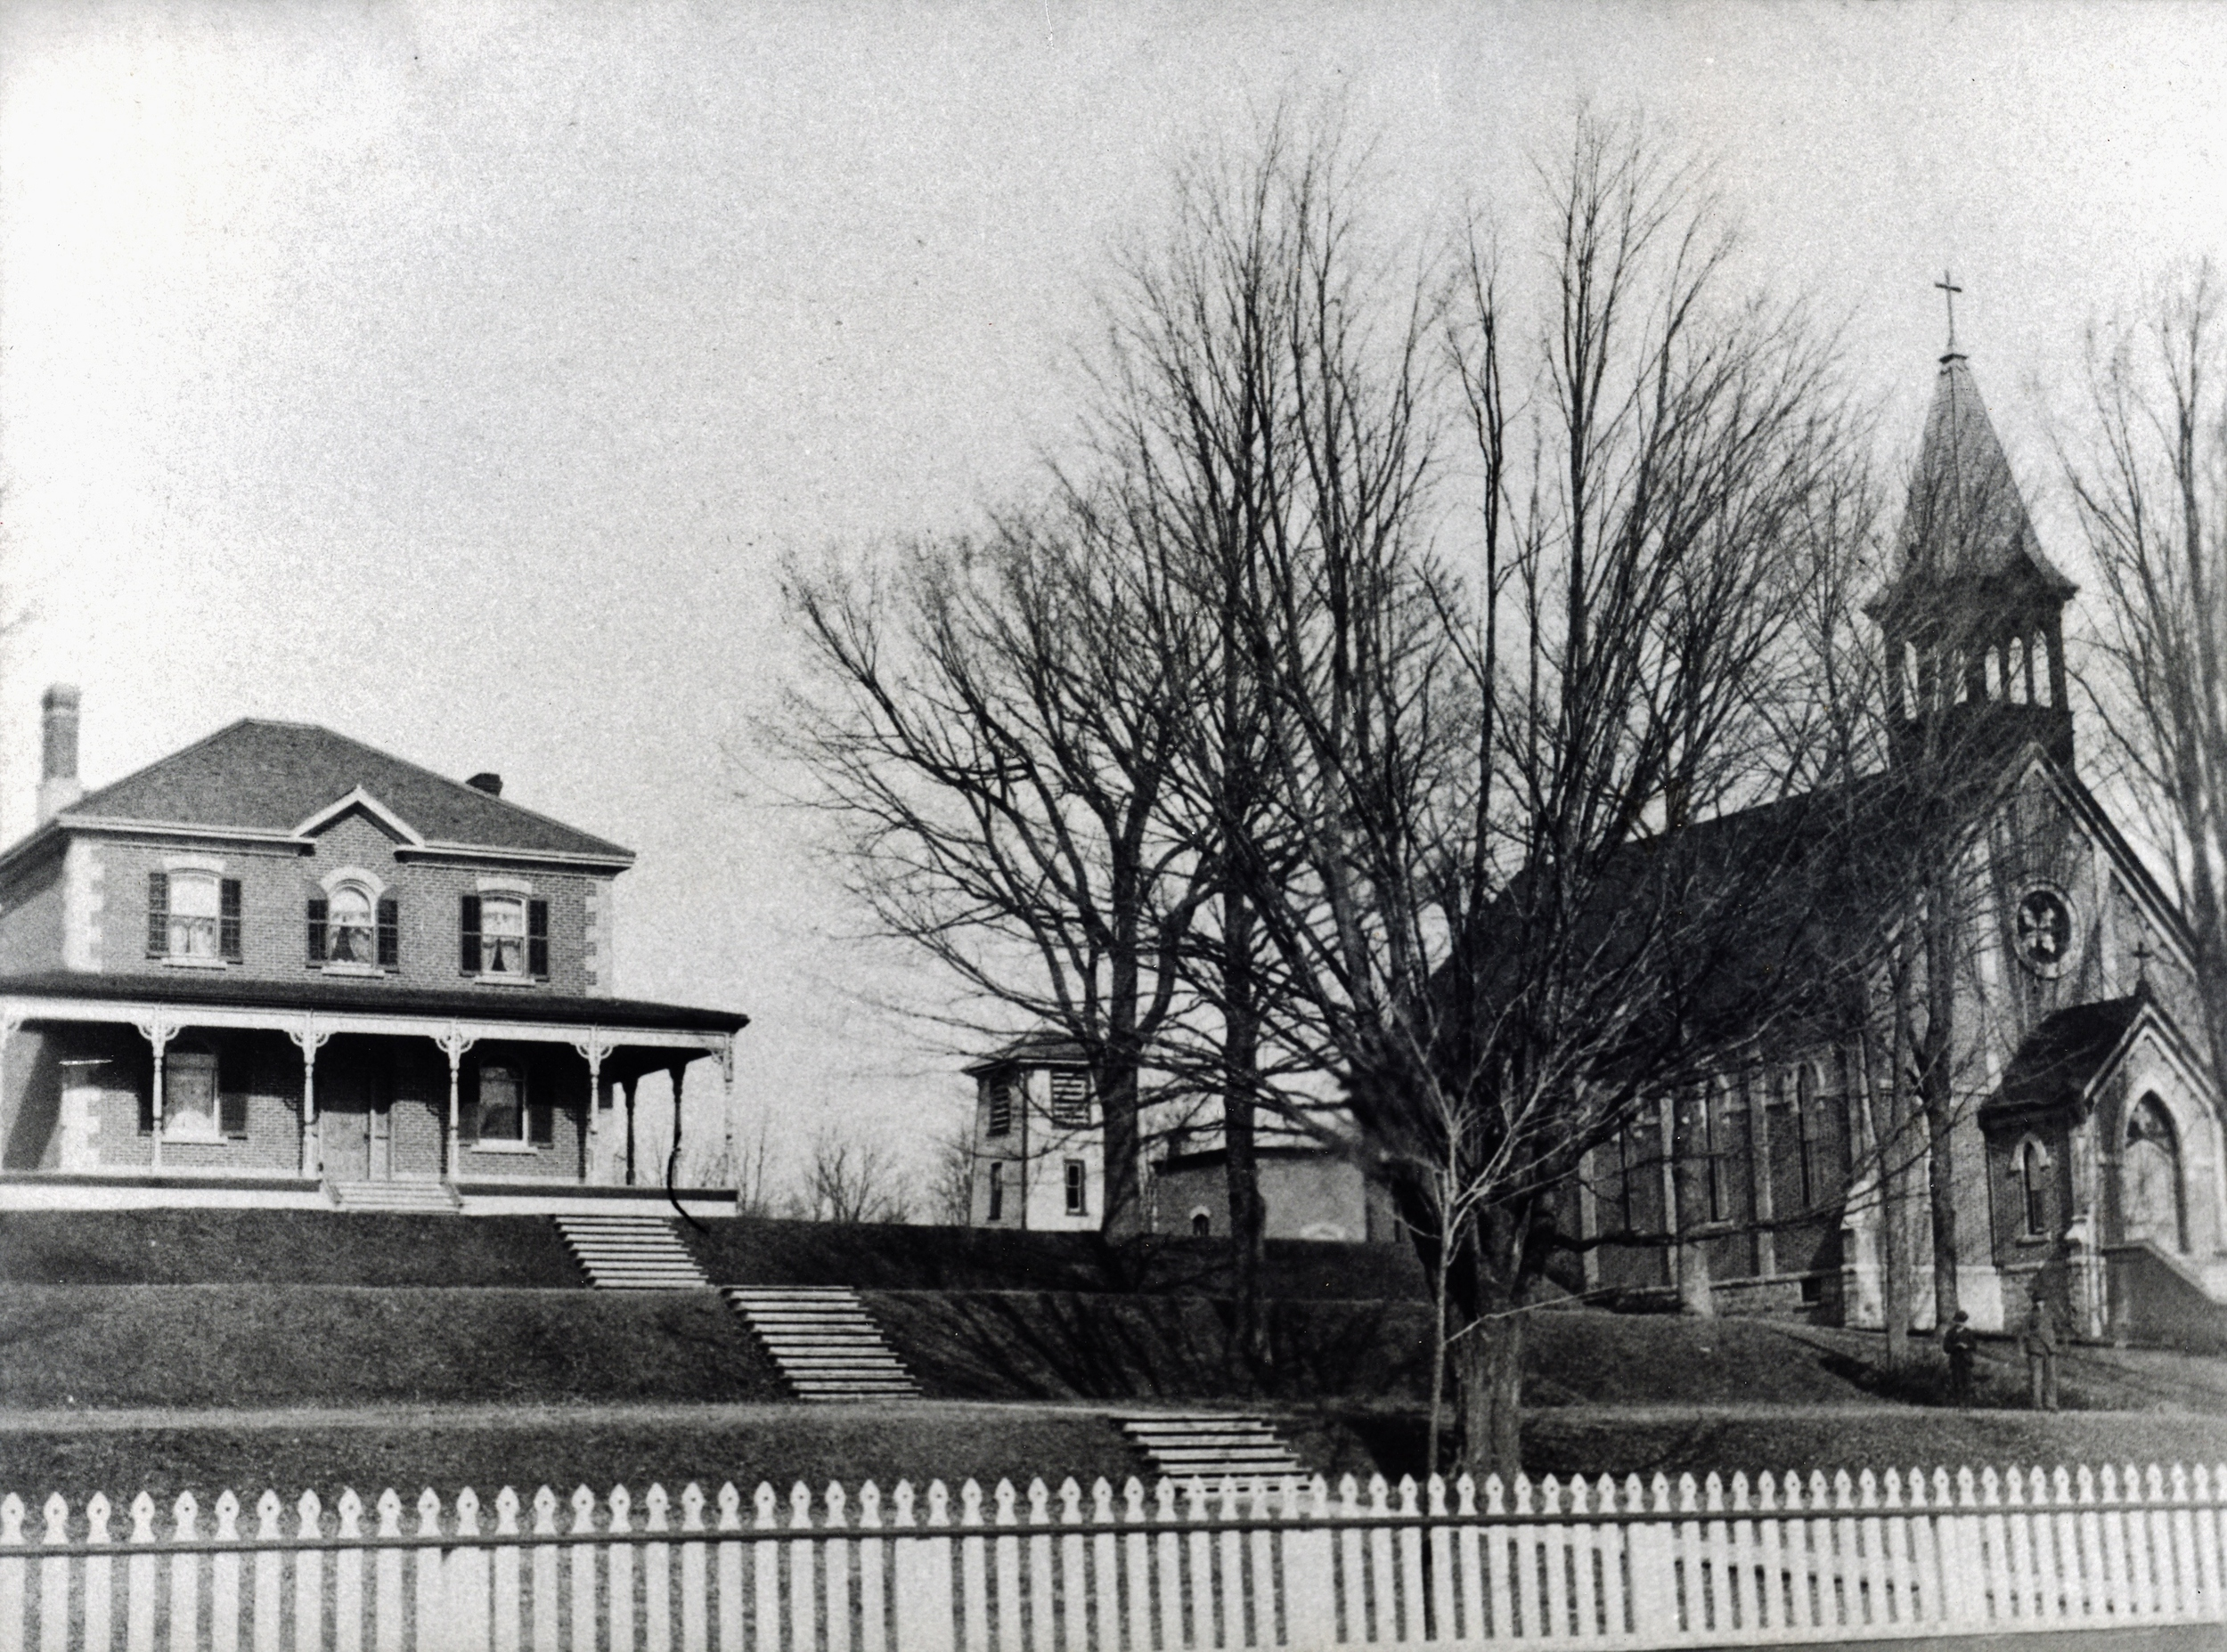 Roman Catholic Rectory built in 1895 and Church,  built 1875